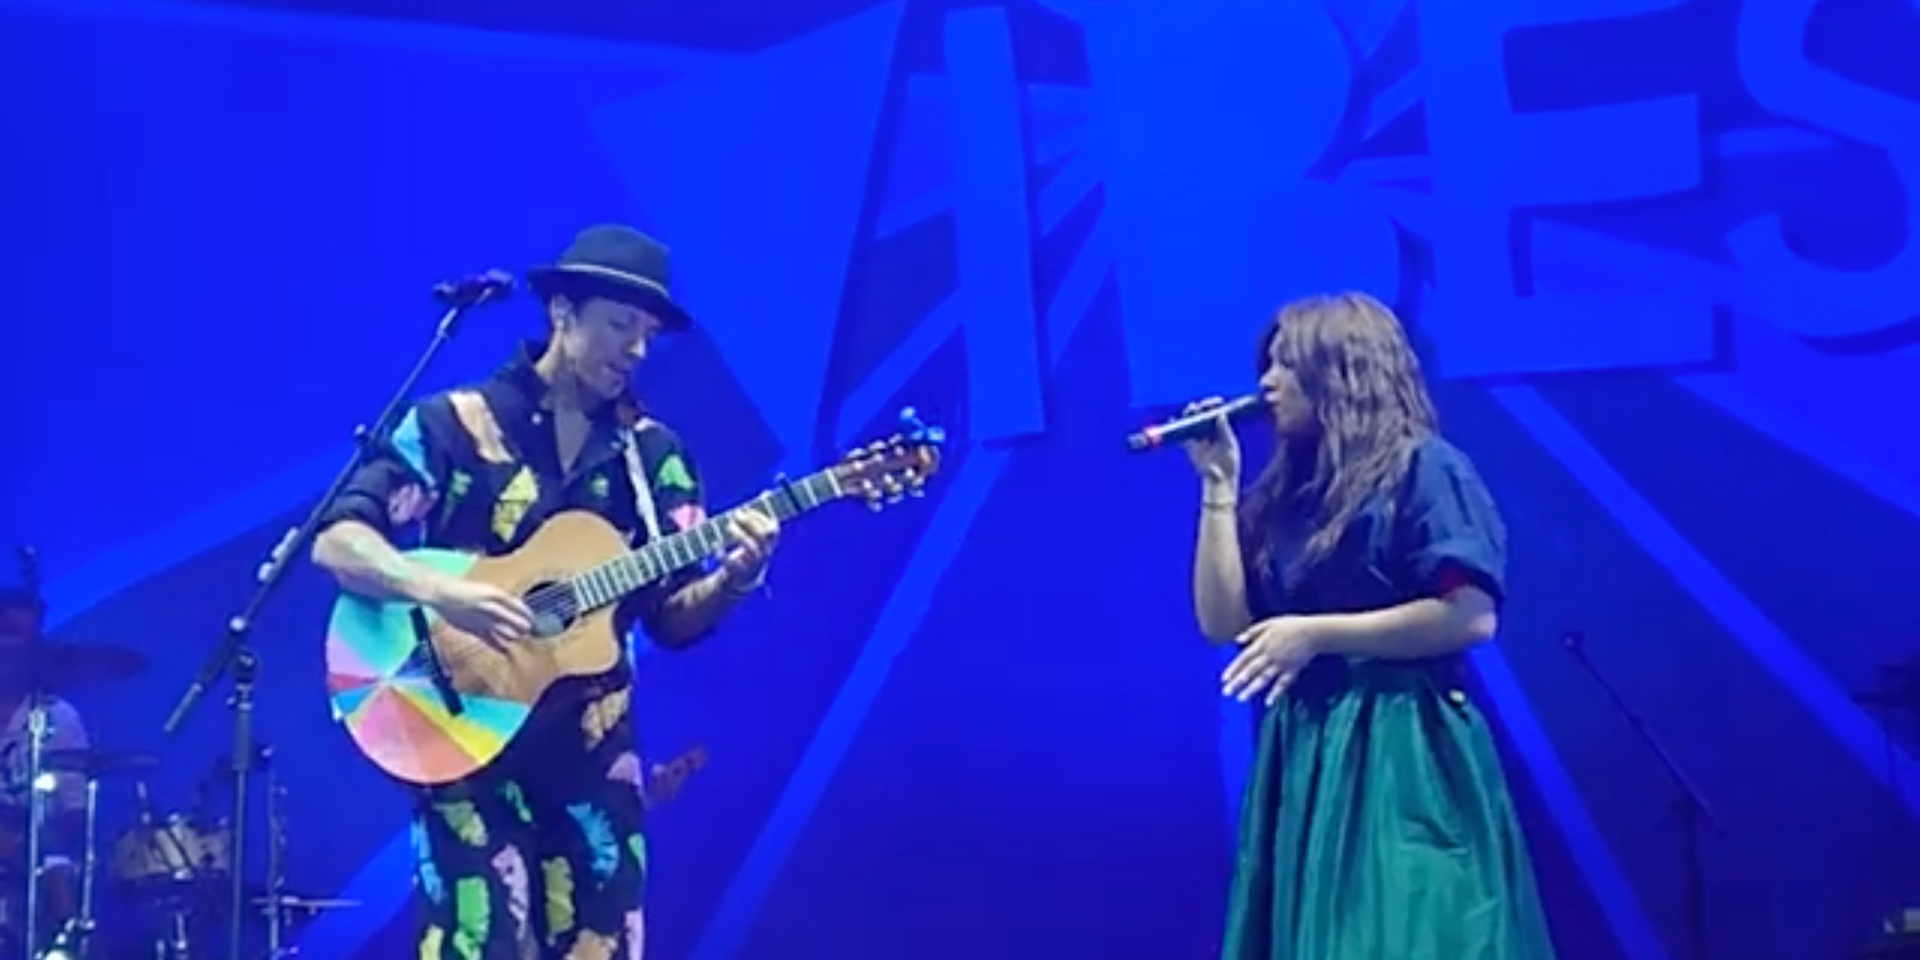 Jason Mraz and Reneé Dominique perform 'Could I Love You Any More?' in Manila concert – watch